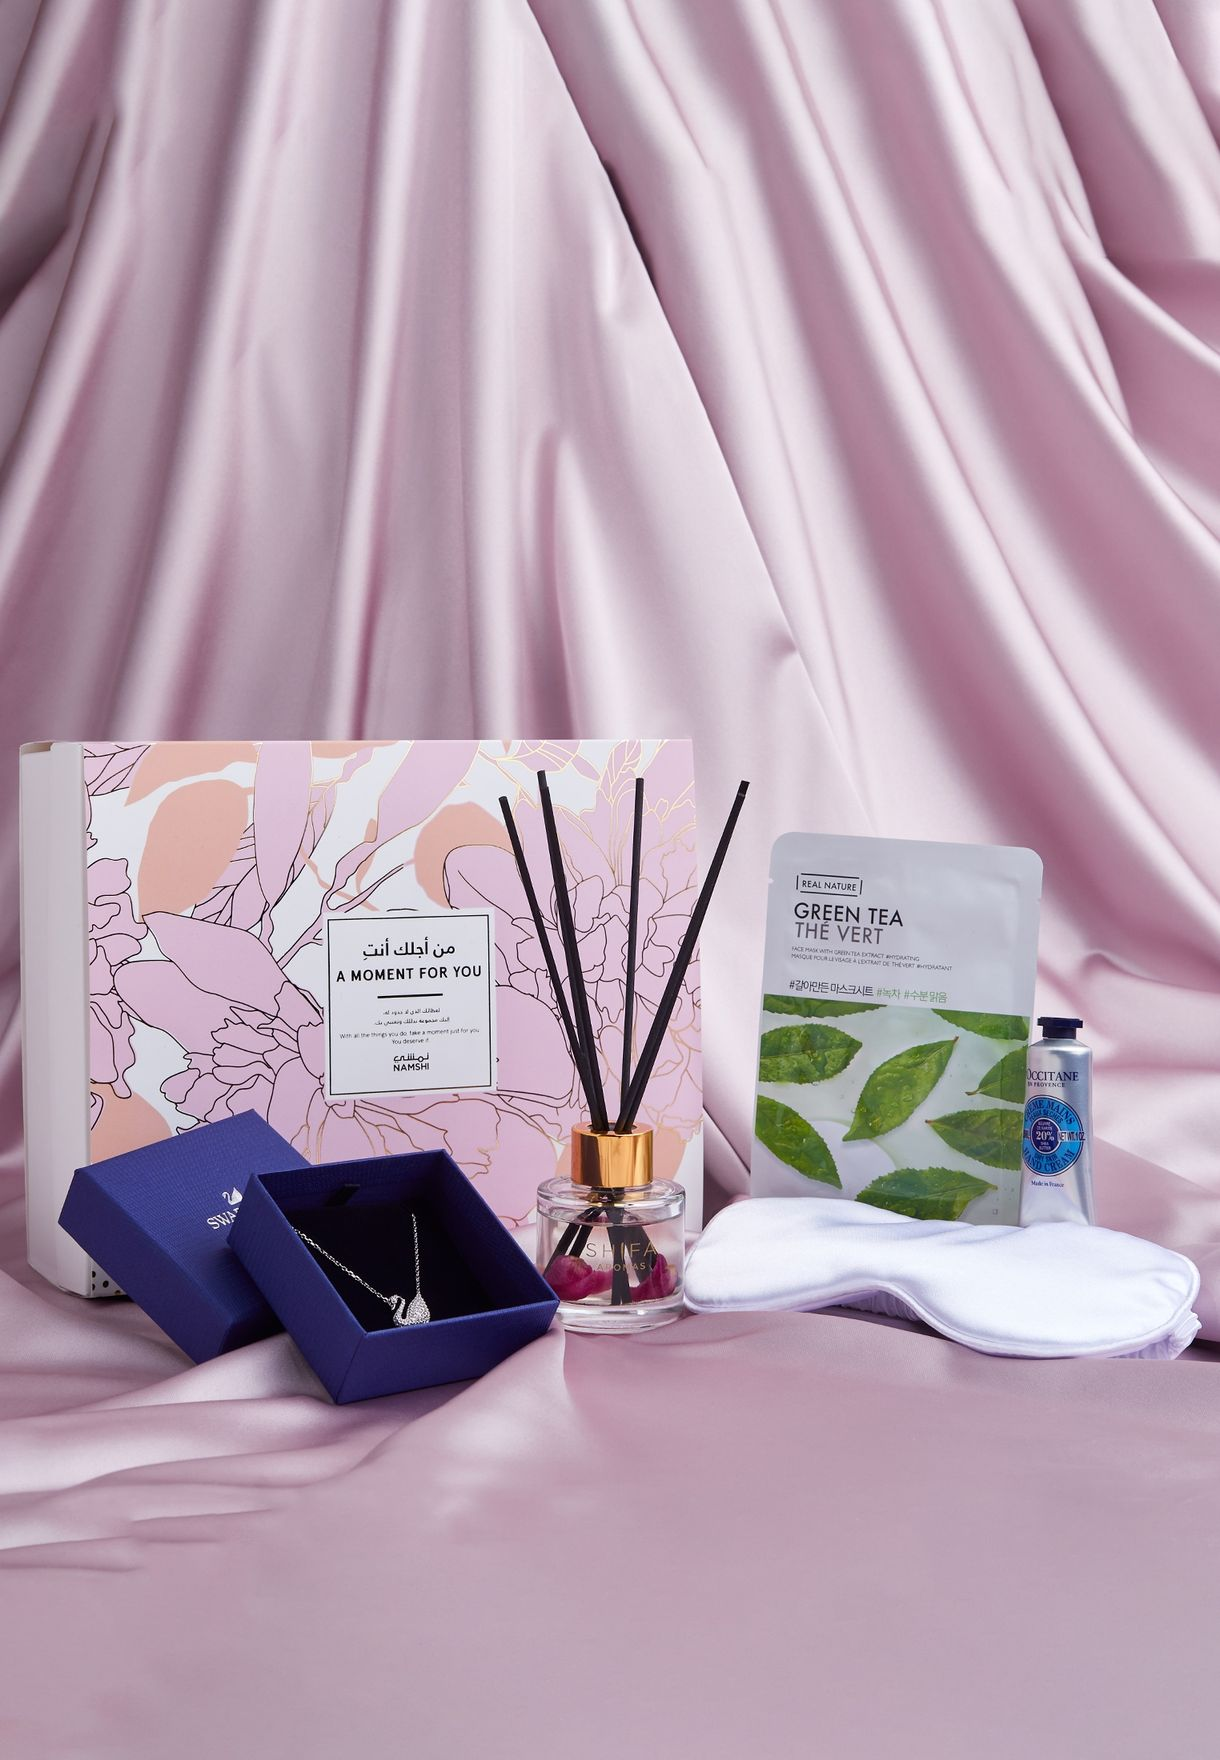 A Moment For You Gift Box Worth 544 AED / 595 SAR